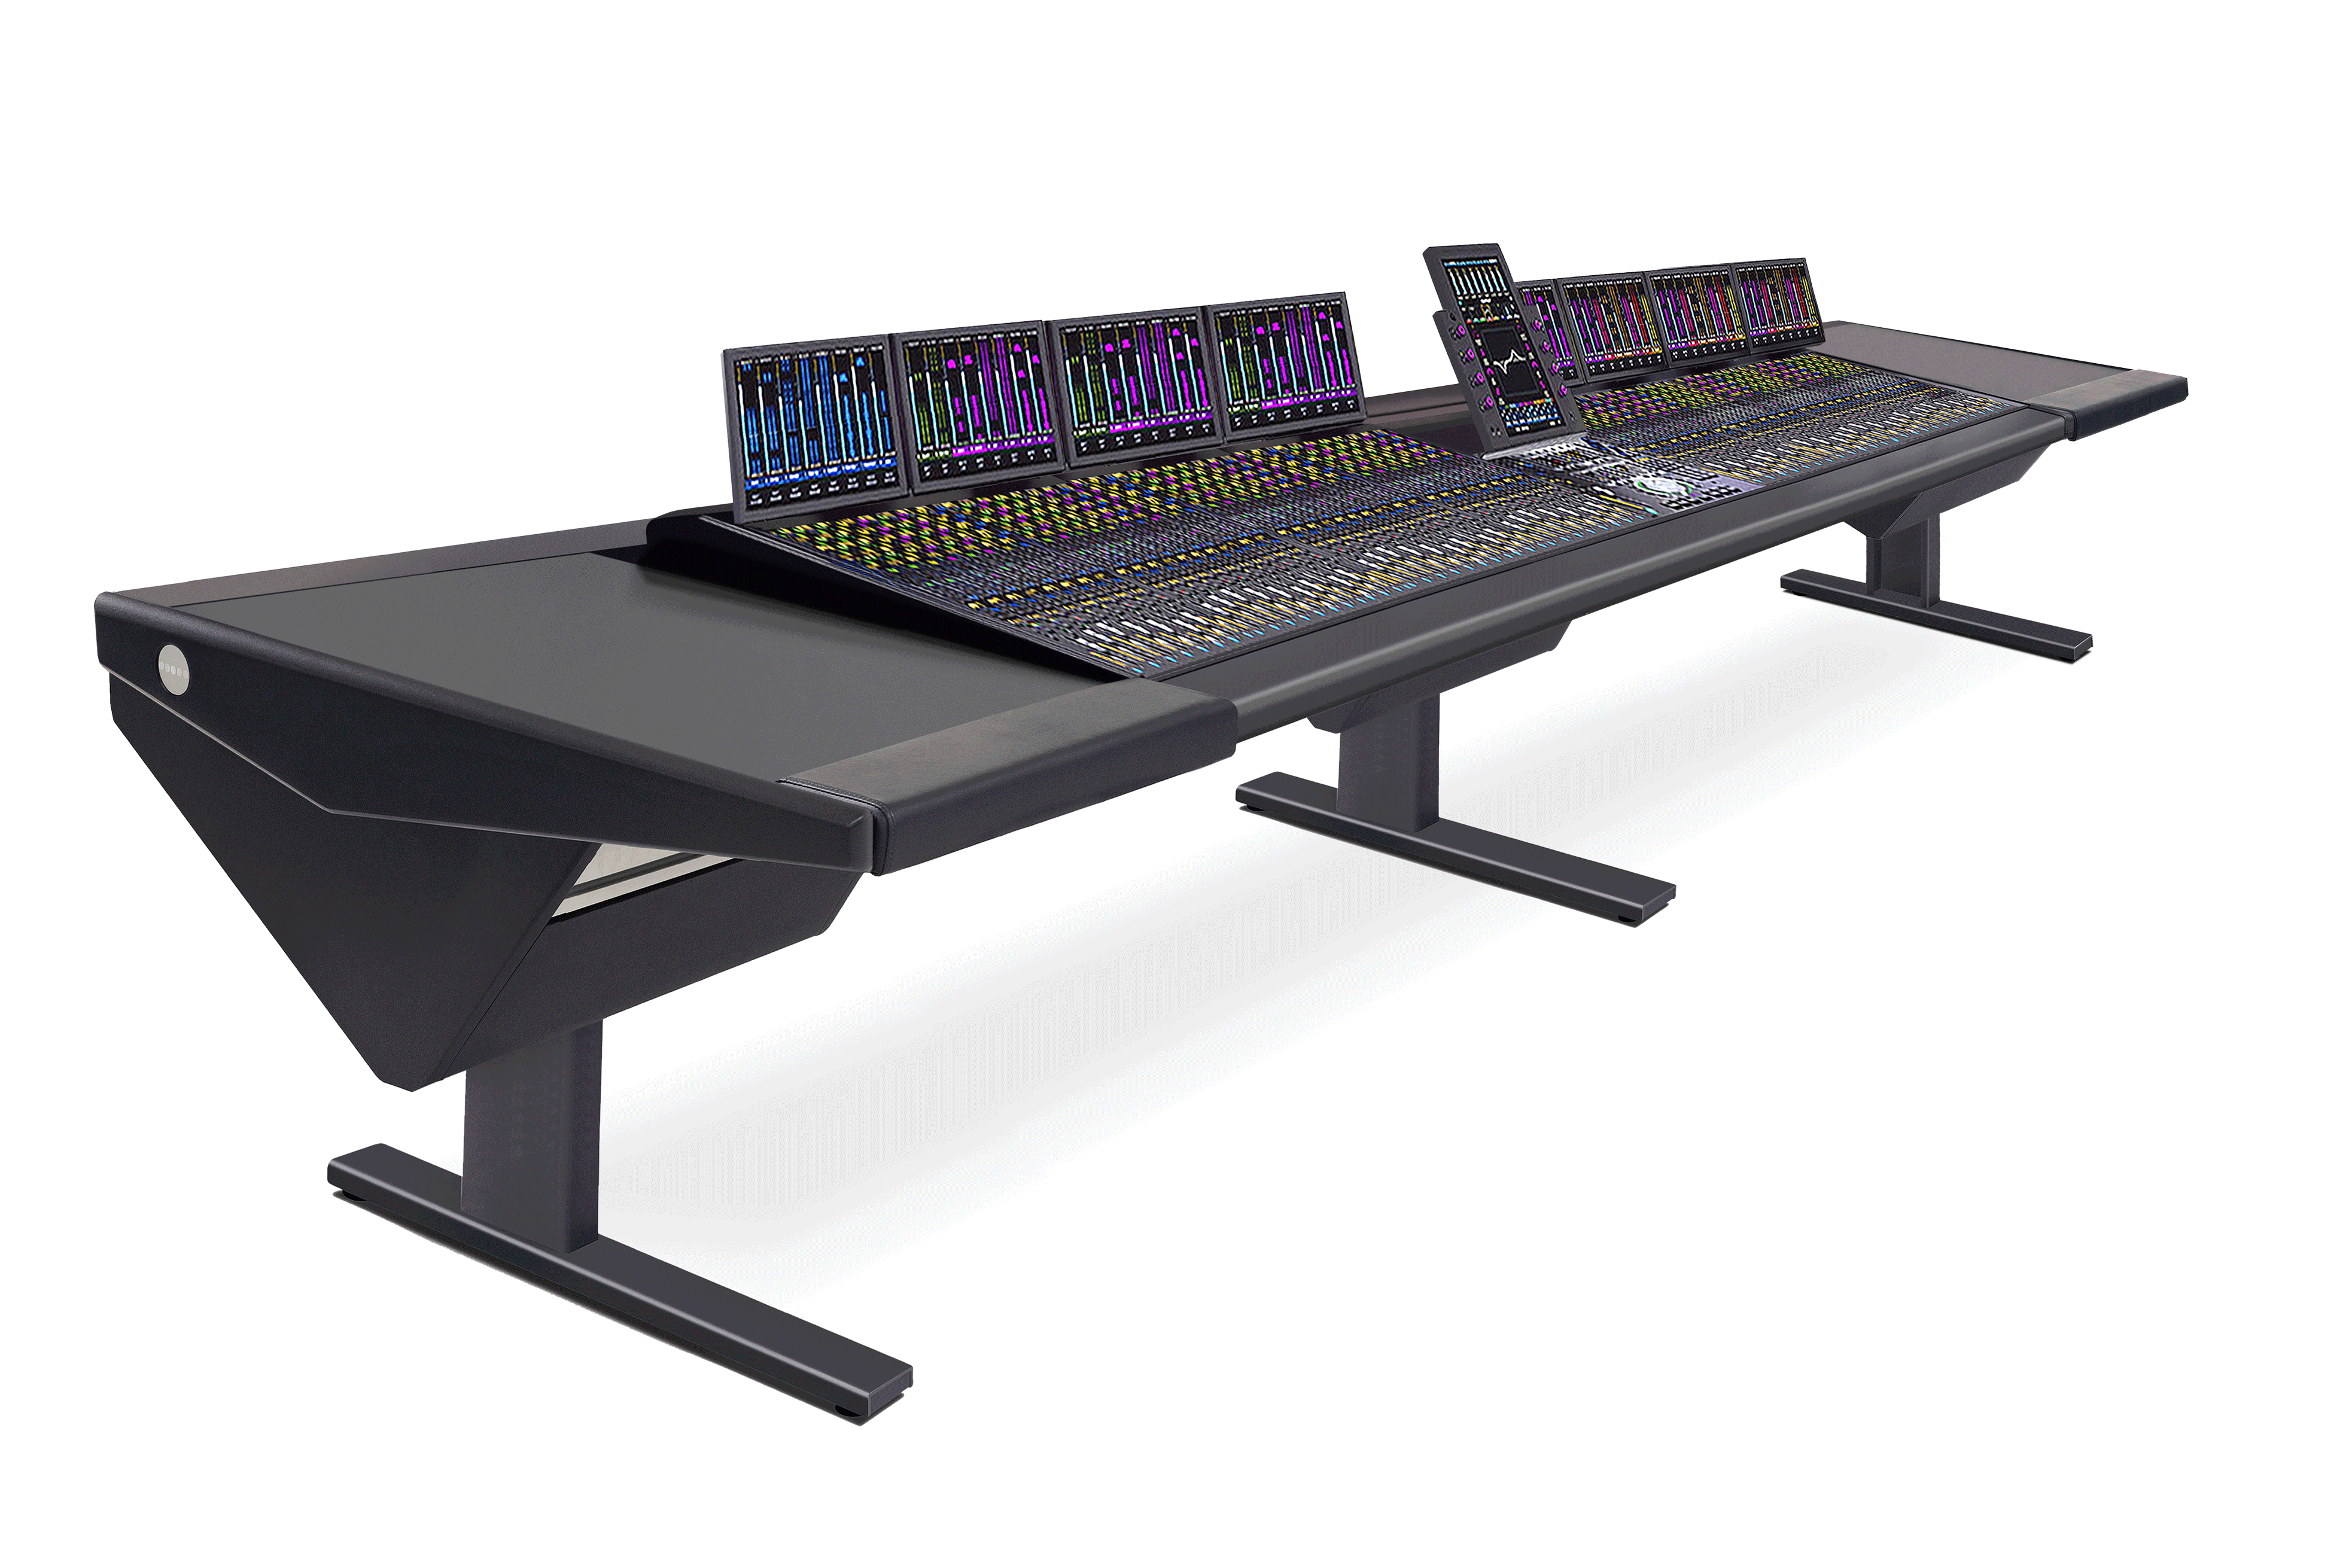 64 Fader System with Desk (L) and Desk (R)